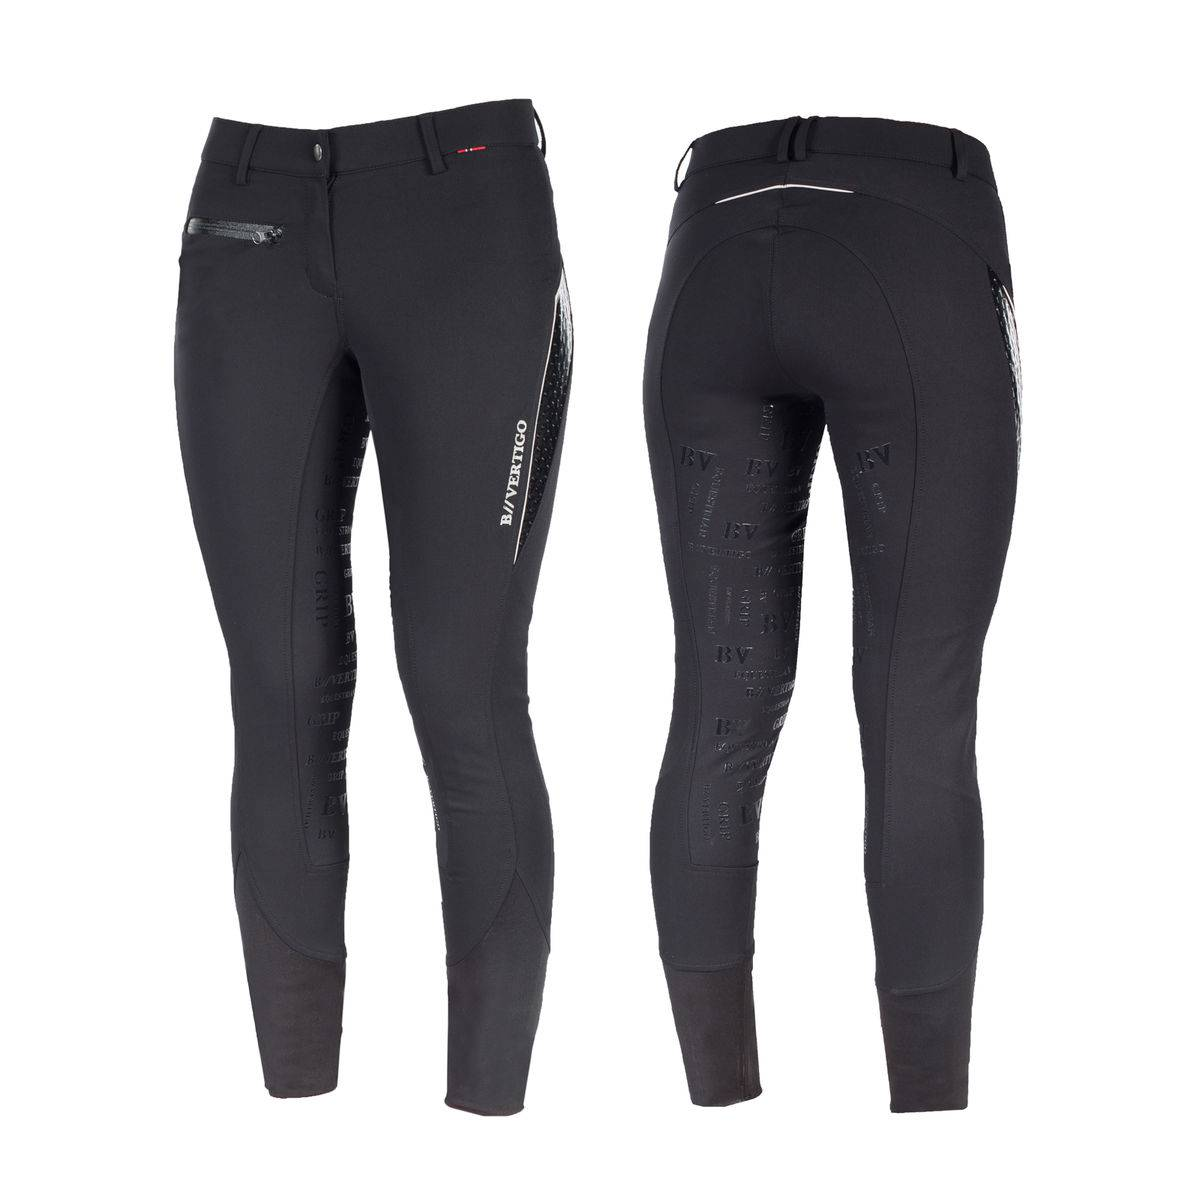 B Vertigo Skylar Full Seat Breeches - Ladies